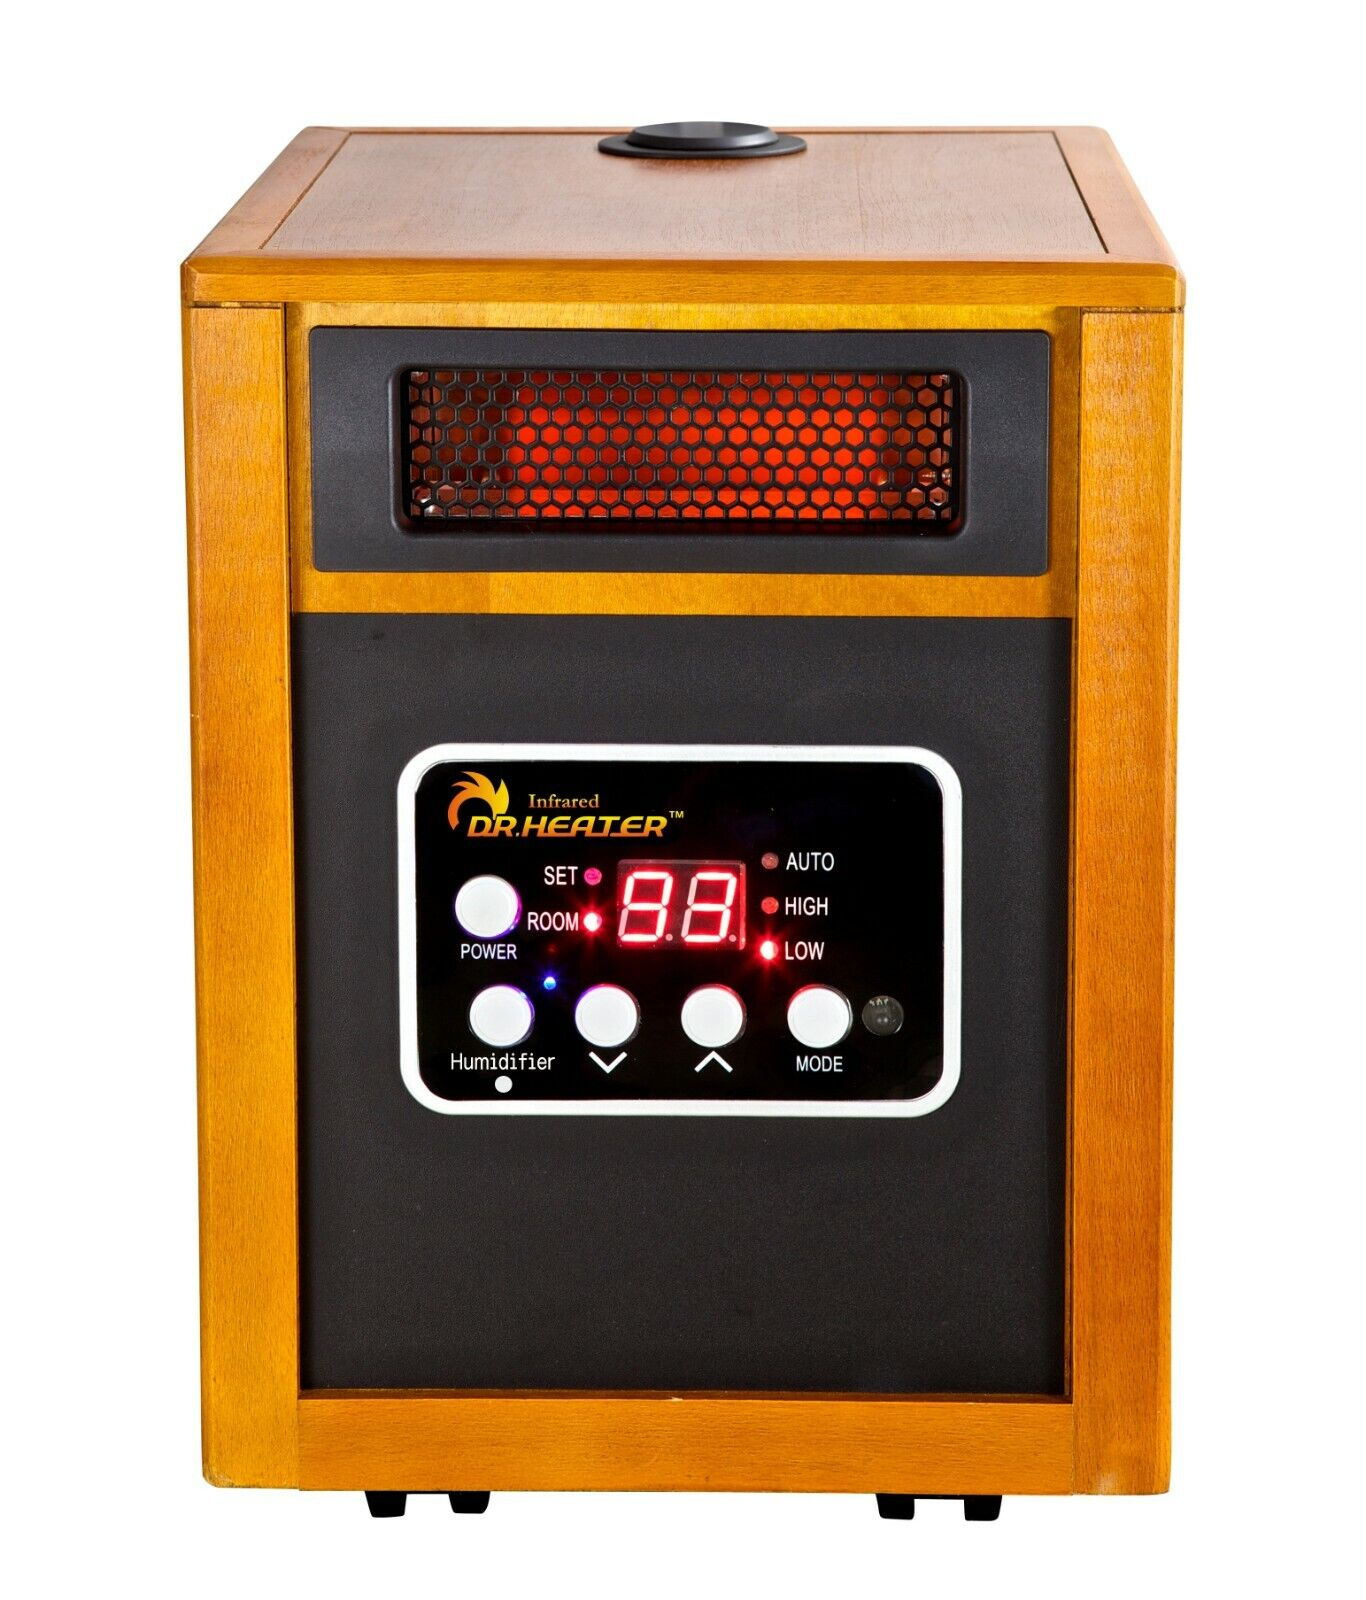 Dr Infrared Heater 1,500 Watt Electric Infrared Space Heater